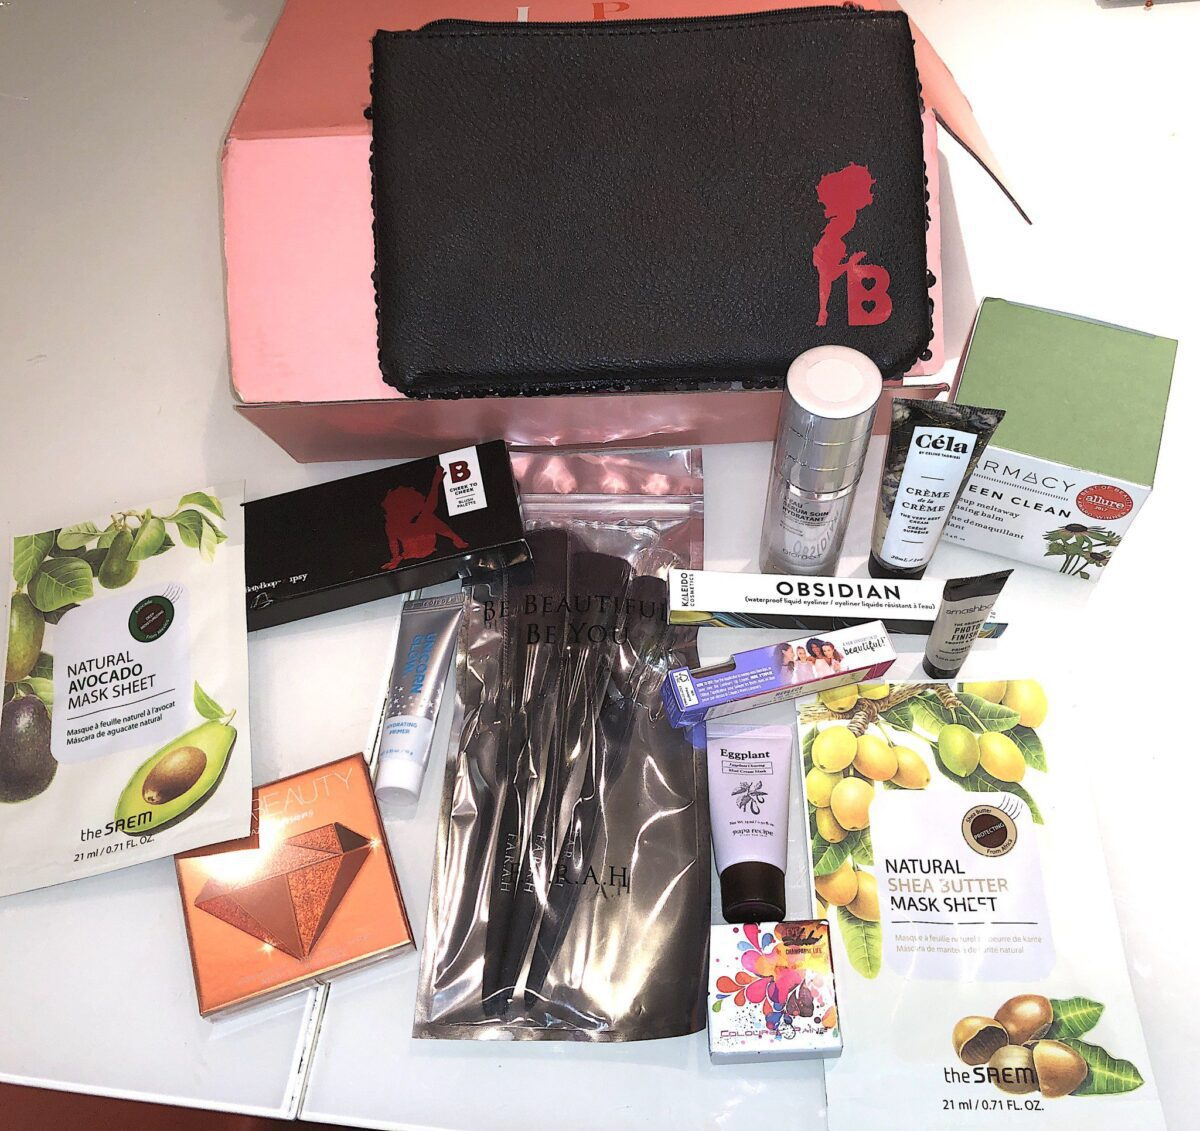 THE IPSY GLAM BAG ULTIMATE OCTOBER 2019 BOX AND CONTENTS